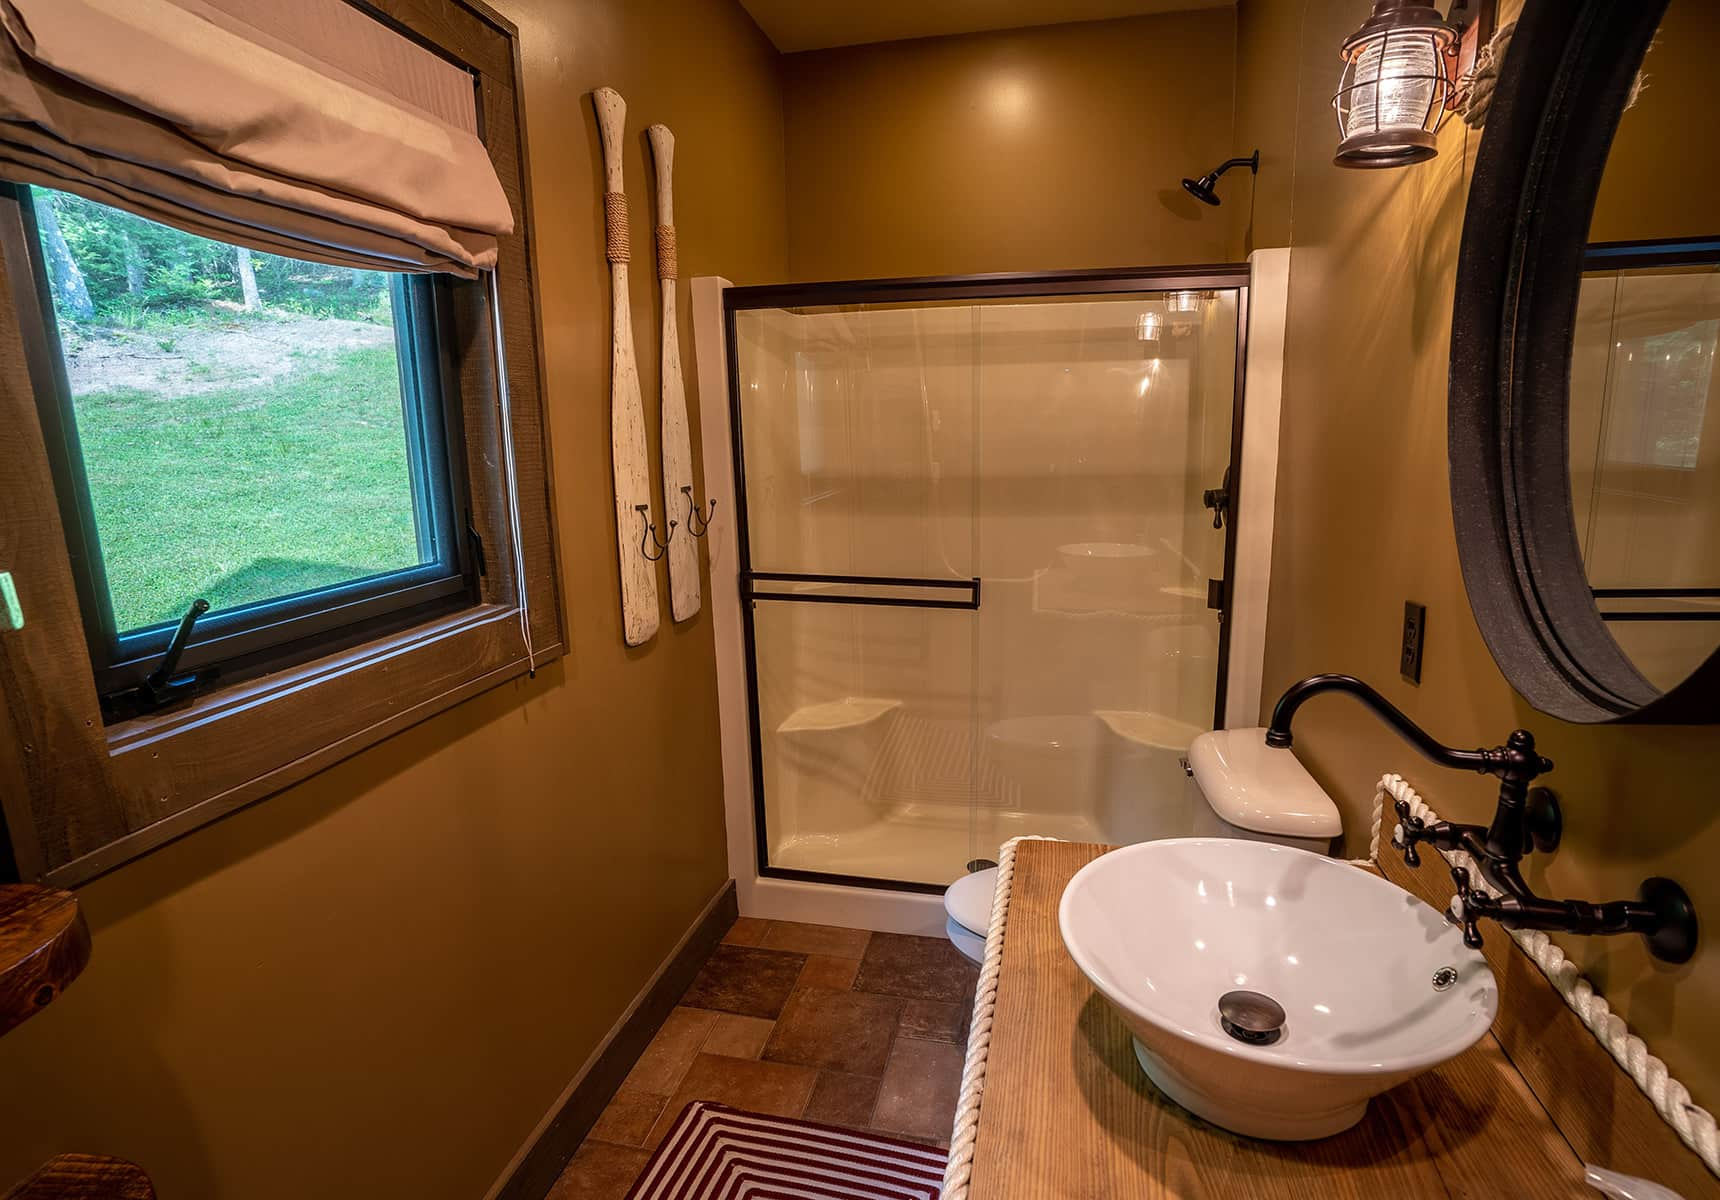 Boathouse bathroom with walk-in shower - Vacation Rental